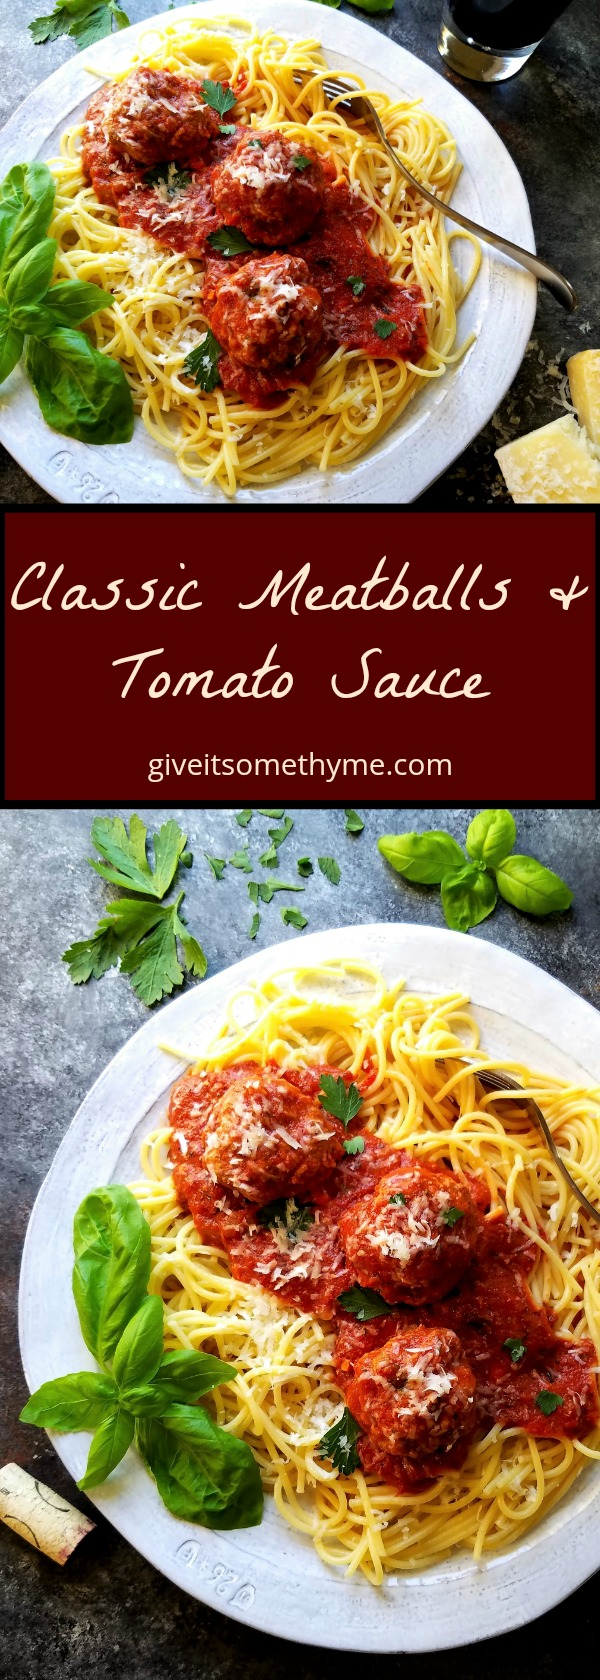 Classic Meatballs & Tomato Sauce - Give it Some Thyme